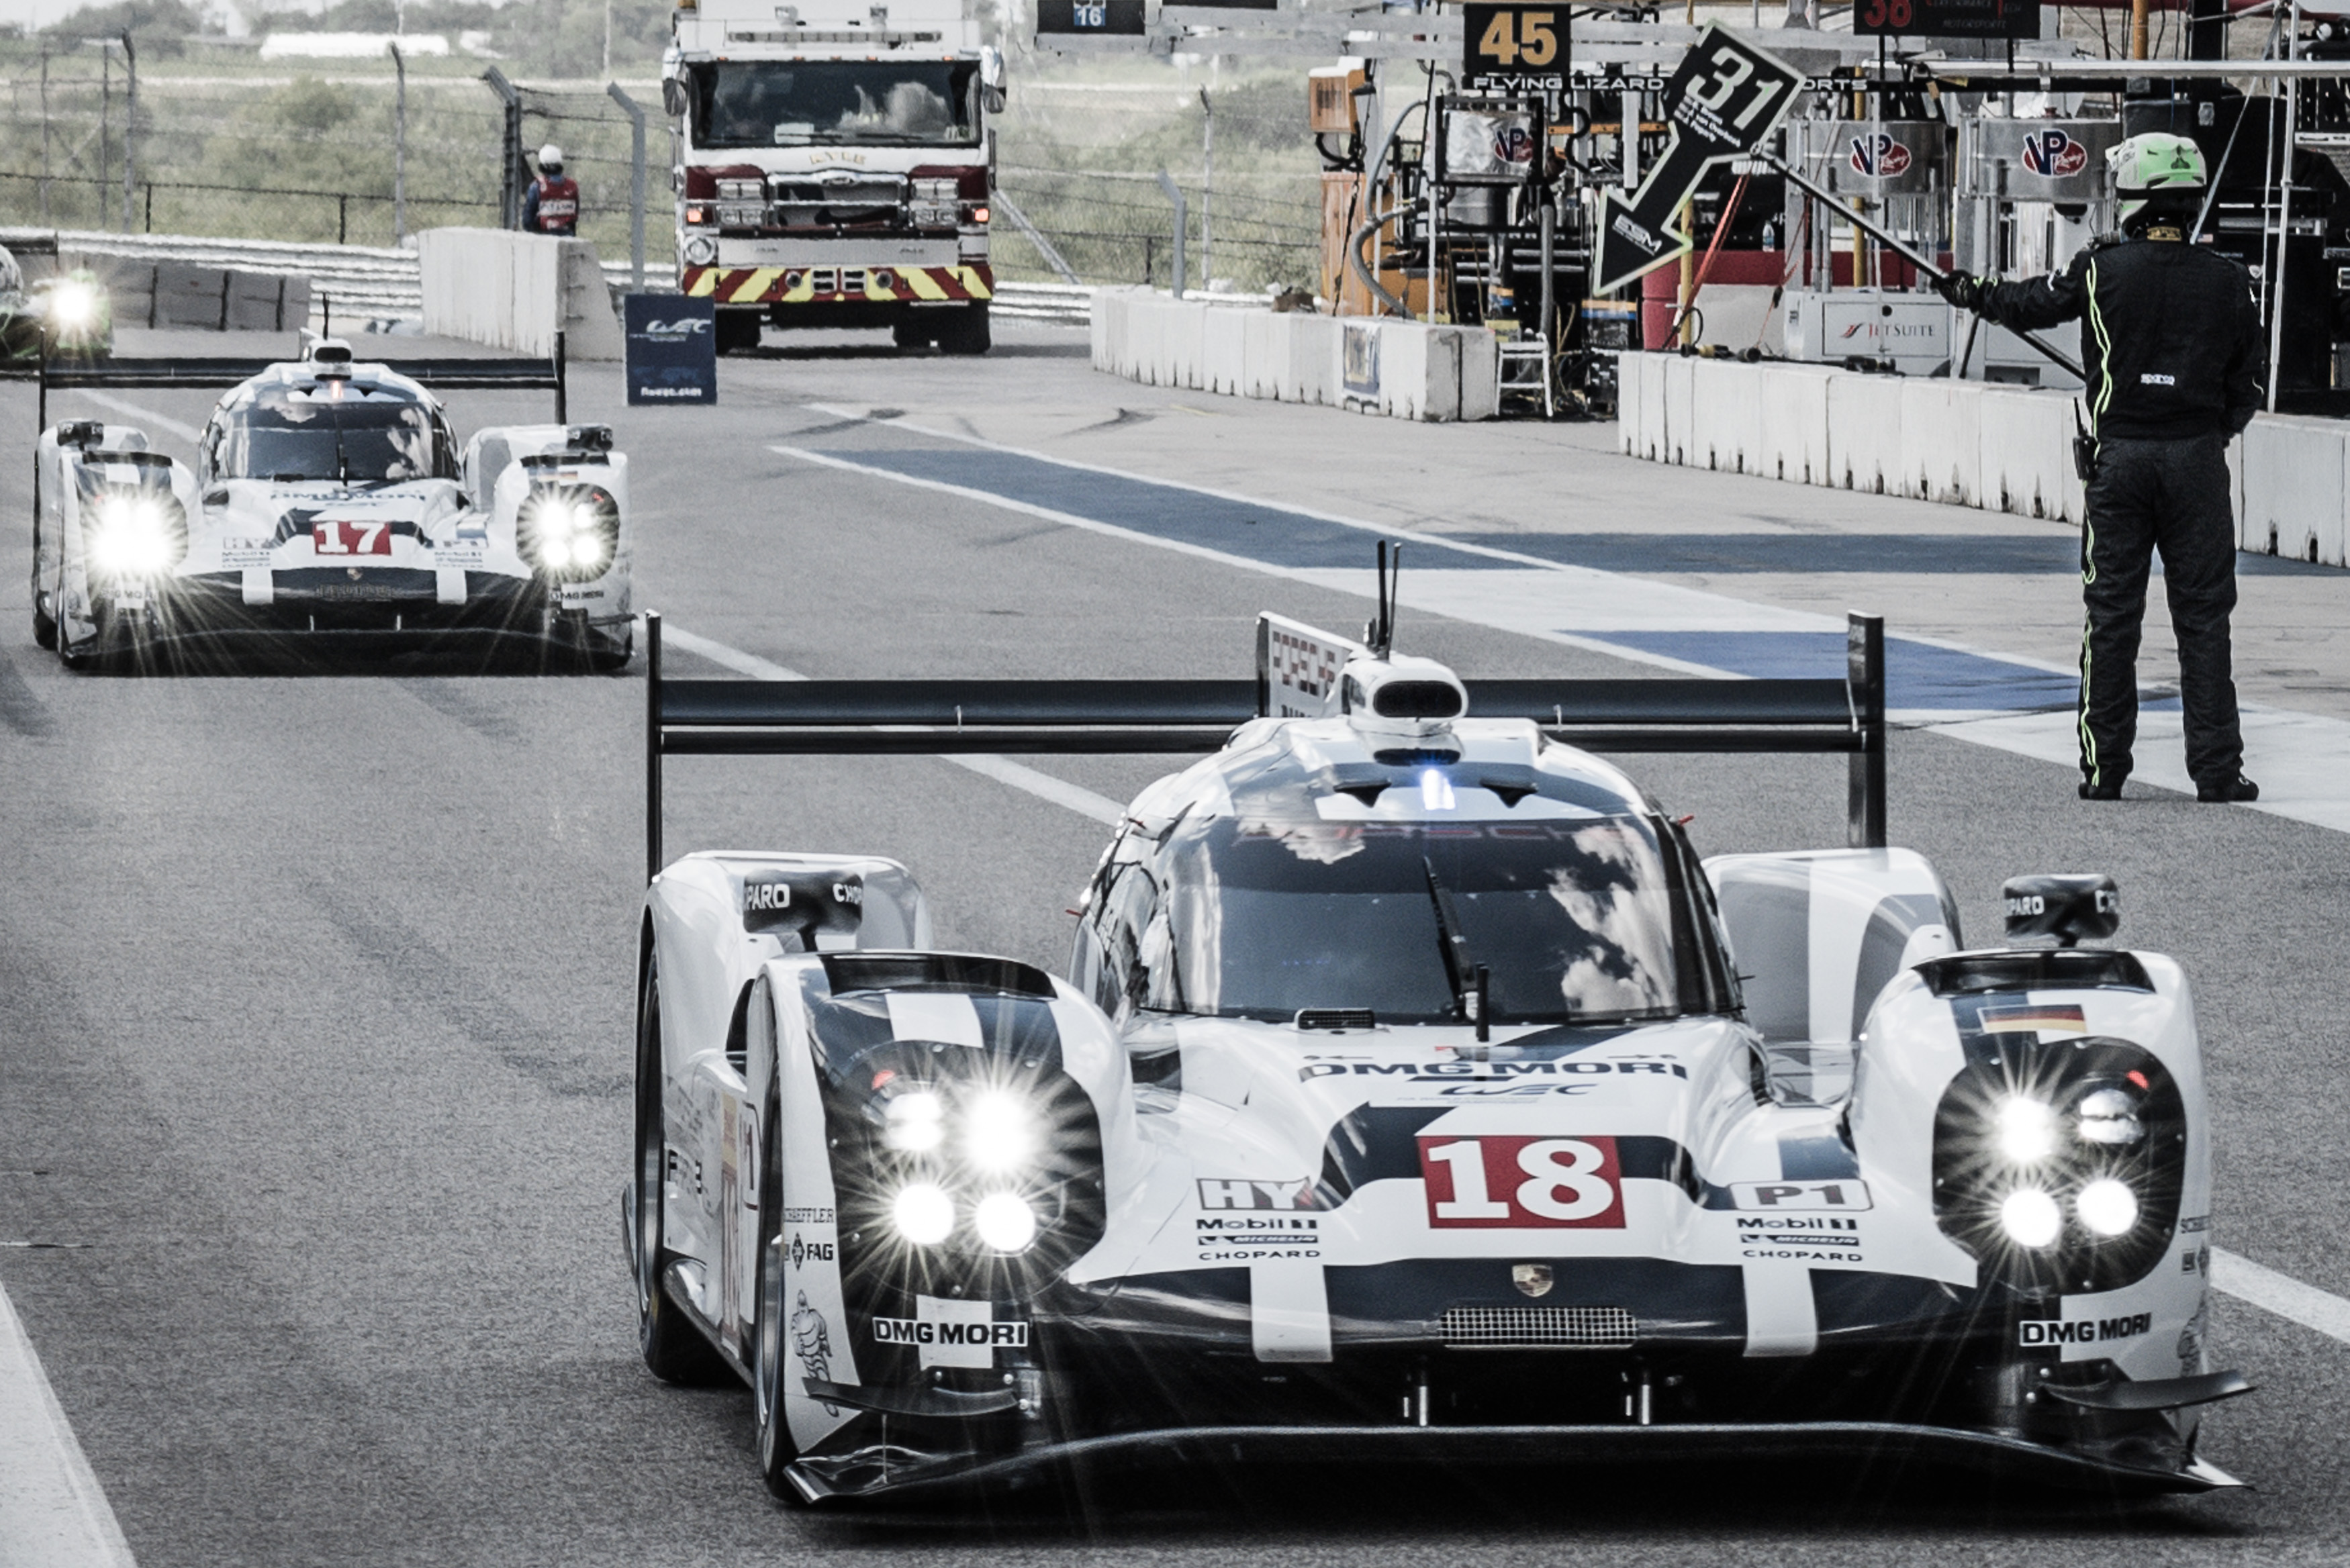 Car #18 / PORSCHE TEAM (DEU) / Porsche 919 Hybrid Hybrid / Romain Dumas (FRA) / Neel Jani (CHE) / Marc Lieb (DEU) Free Practice 1 - 6 Hours of COTA at Circuit Of The Americas - Austin - Texas - USA